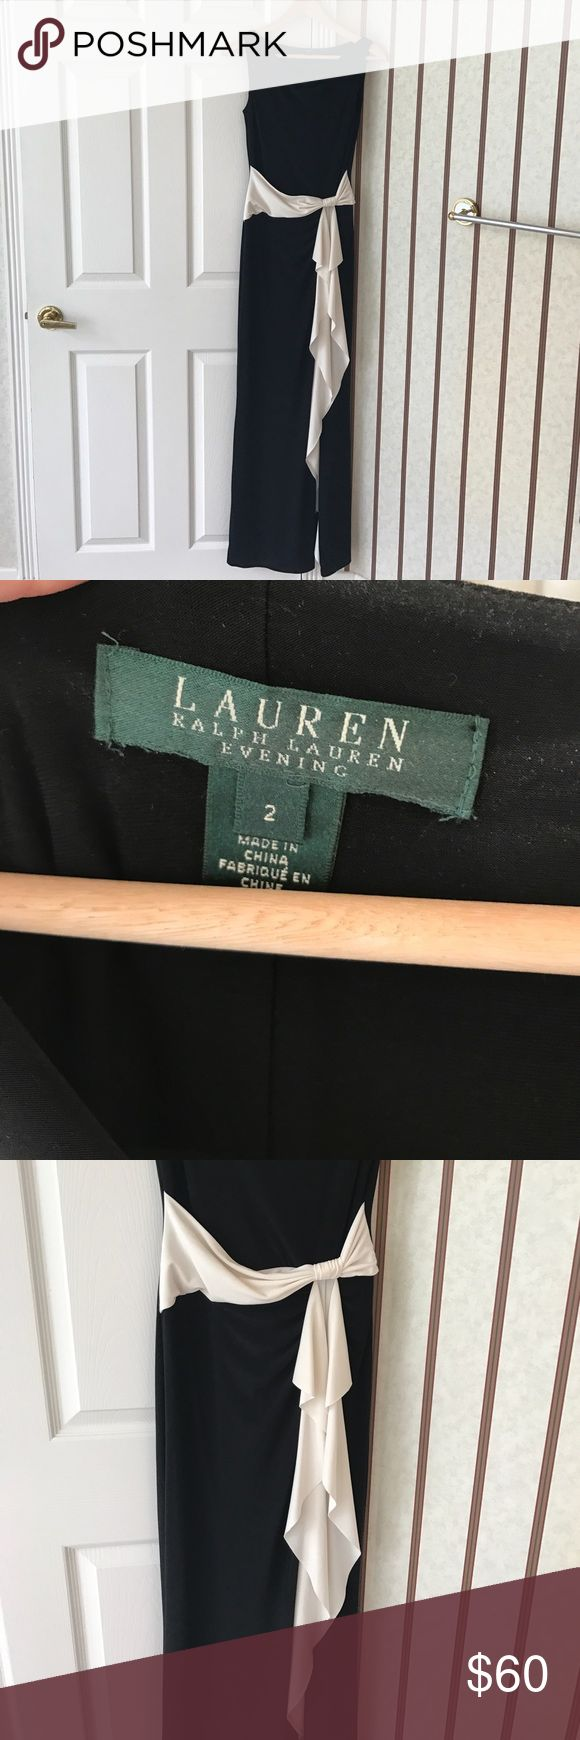 """Ralph Lauren evening dress size 2 Excellent used Ralph Lauren evening dress. Black with off-white tie/ruffle (it doesn't tie, it's made that way) Worn once and dry cleaned.  Beautiful form fitting dress for black tie or black tie optional event.  Knee high side slit in dress.  I am 120 Lbs and 5'6"""" and this fort perfectly. Lauren Ralph Lauren Dresses"""